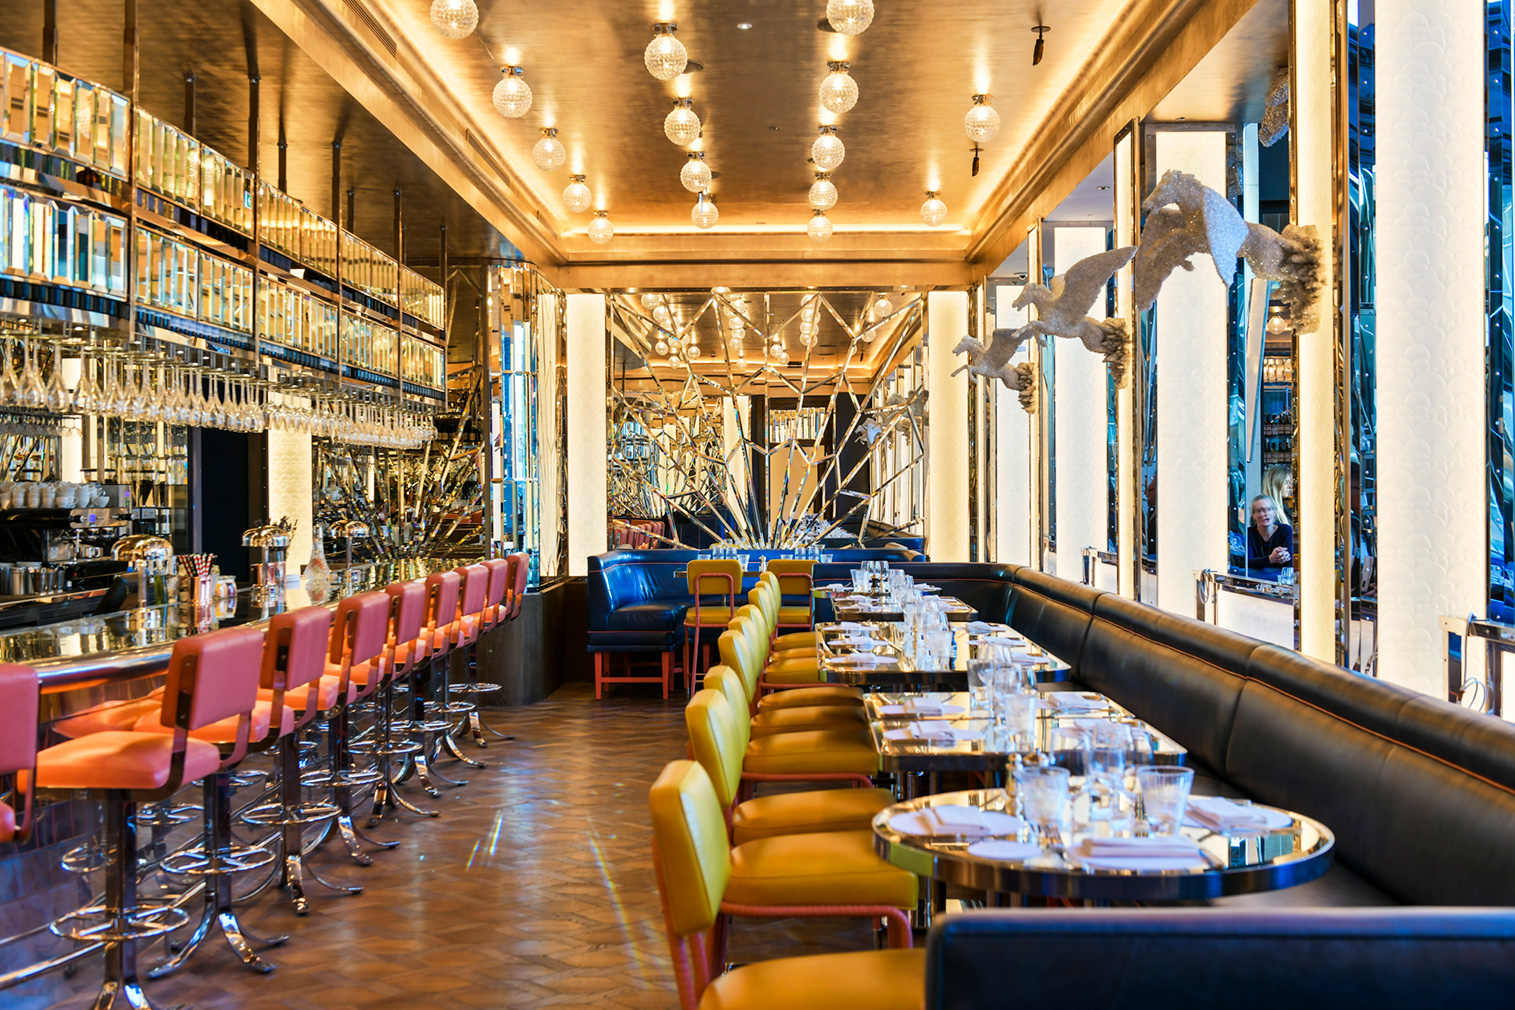 d85ab94832853 Selfridges  Brasserie of Light features a 24-ft-tall flying horse by Damien